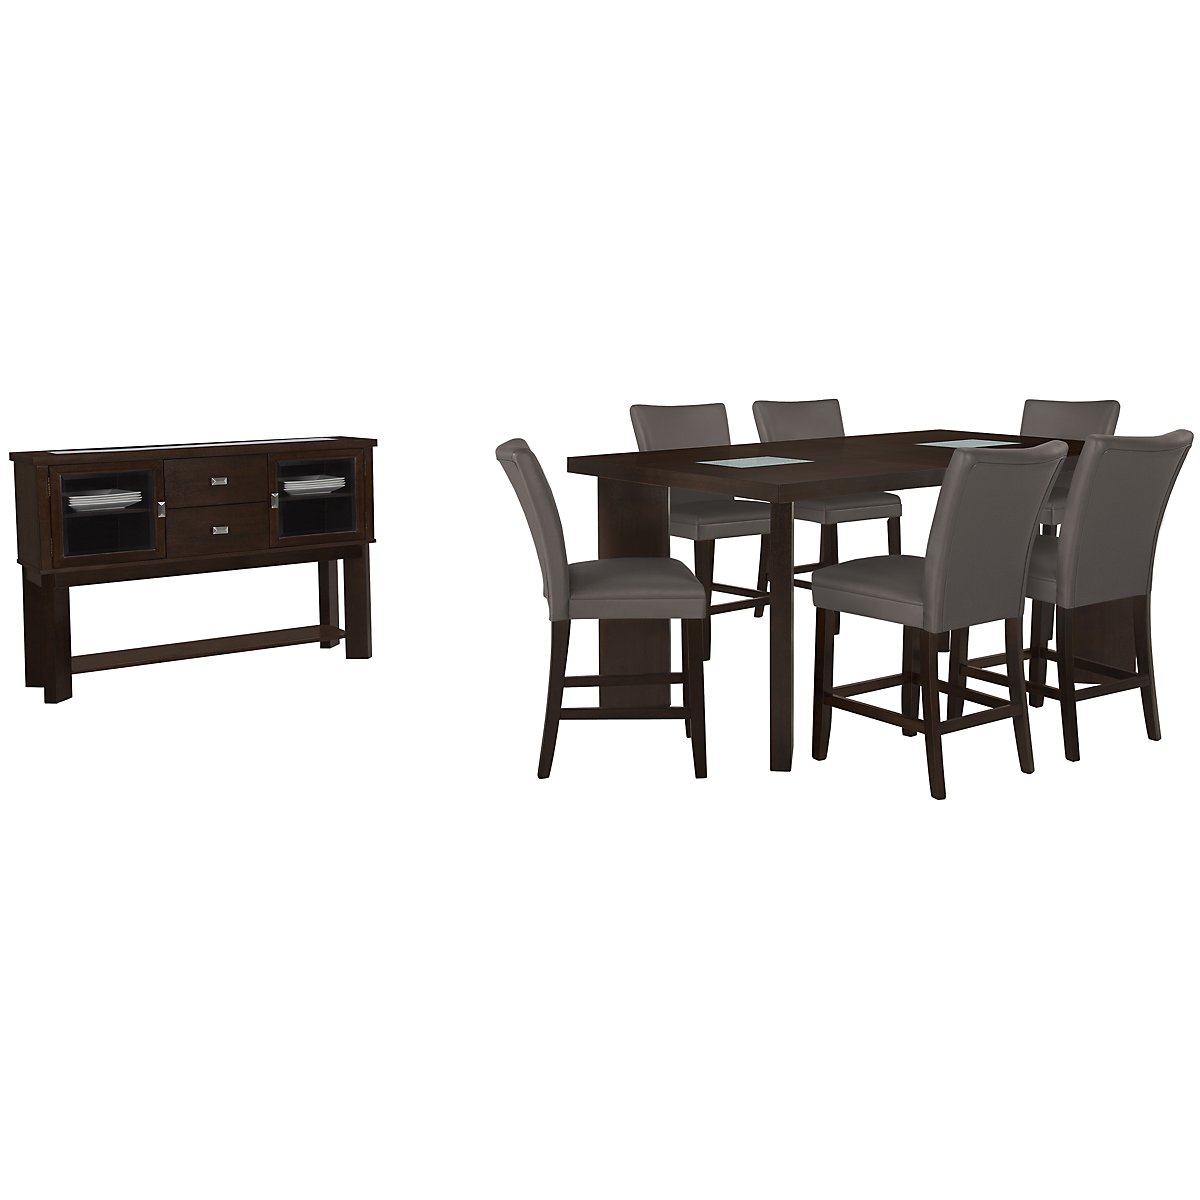 Delano2 Dark Gray High Dining Room